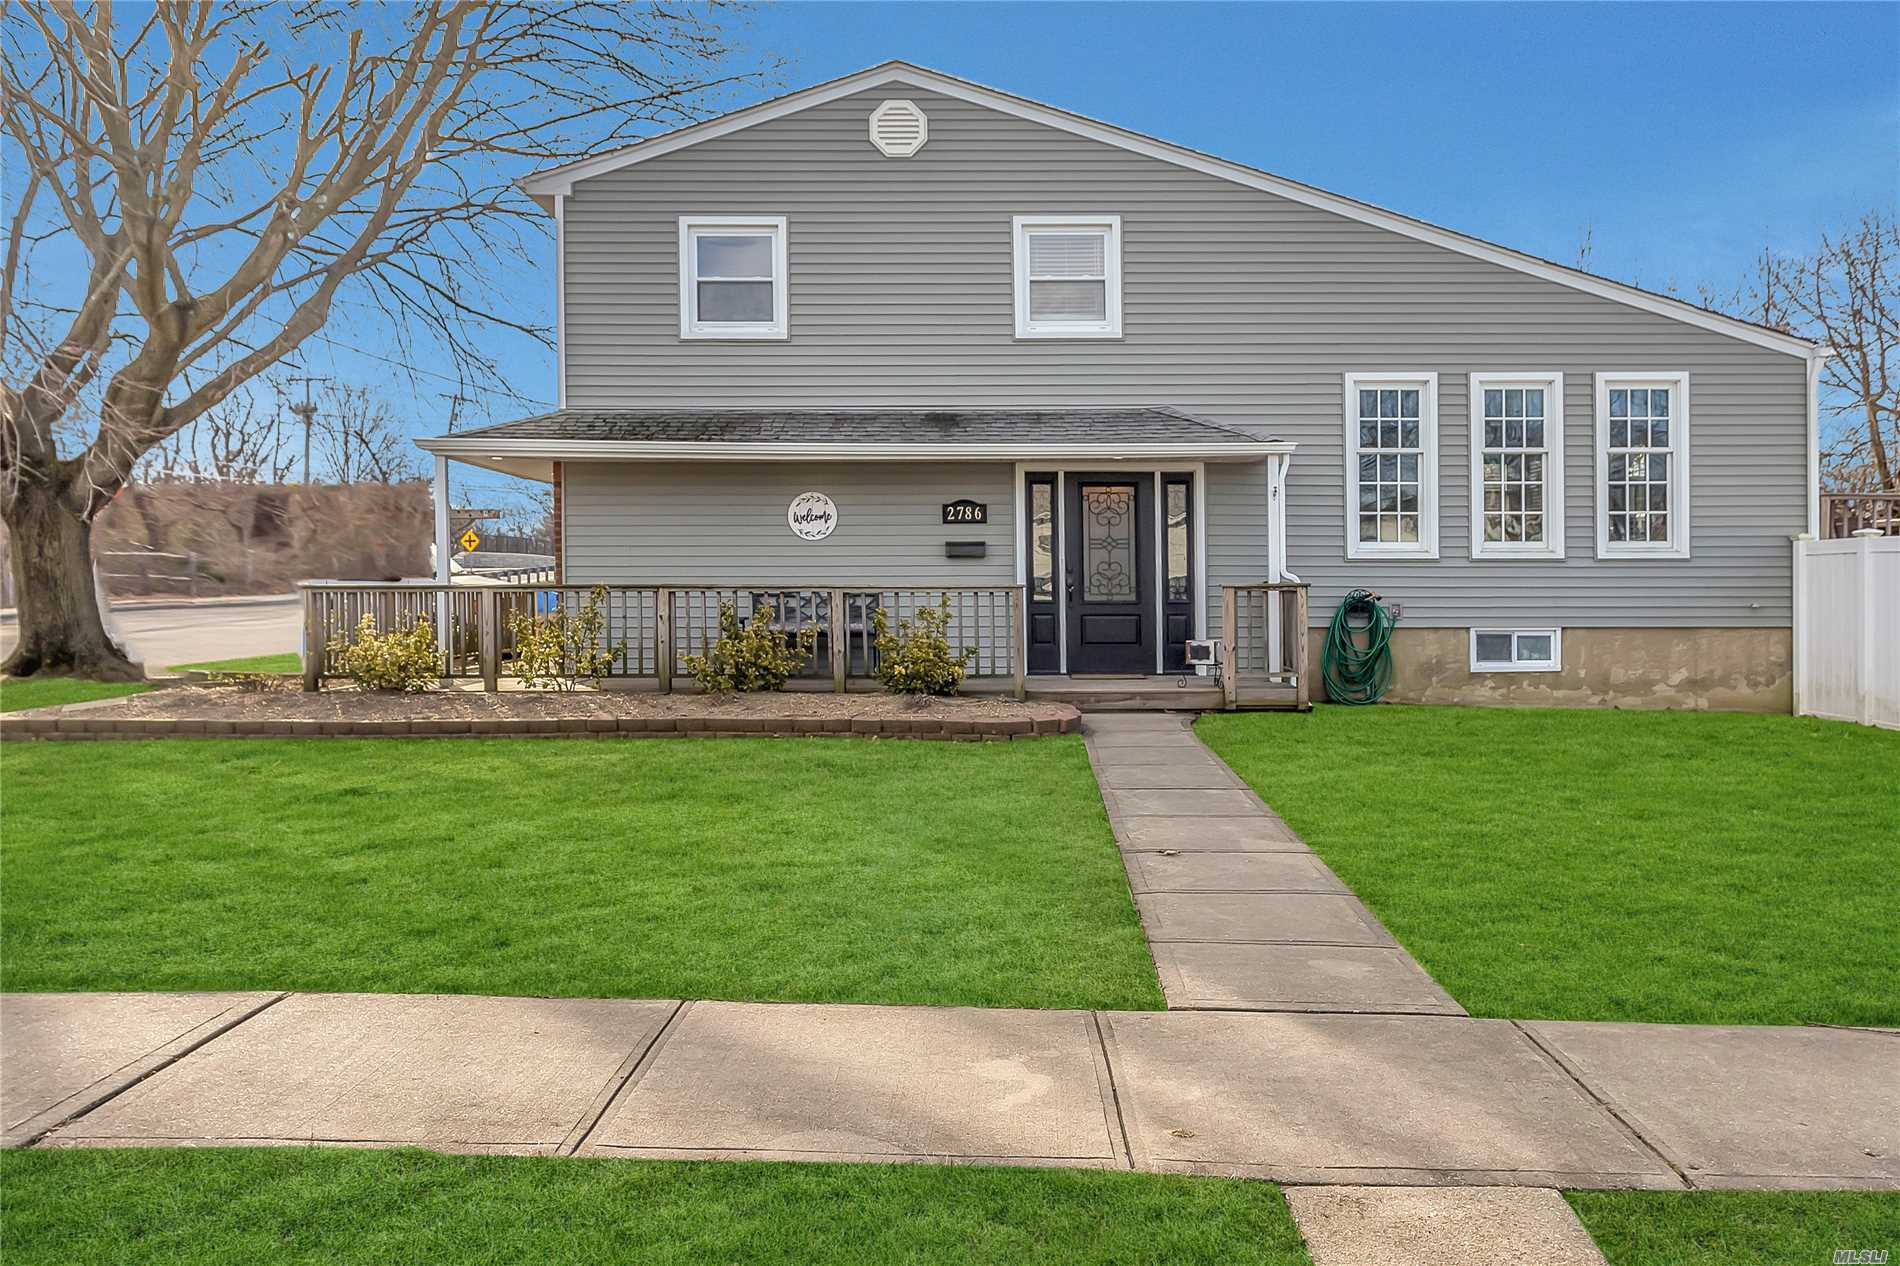 This Gorgeous Split Level Is Better Than A New Home! Current Contractor Owner Renovated Entire Home For His Own Family. Beautiful Finishes. Gourmet Granite Eik, Beautiful Crown Molding And Doors. Full Finished Basement With Ose. New Windows, New Siding And Roof. New Pvc Fence Surrounding A Delightful Entertainment Back Yard With Its Own Basketball Court. Don't Miss This Beauty!